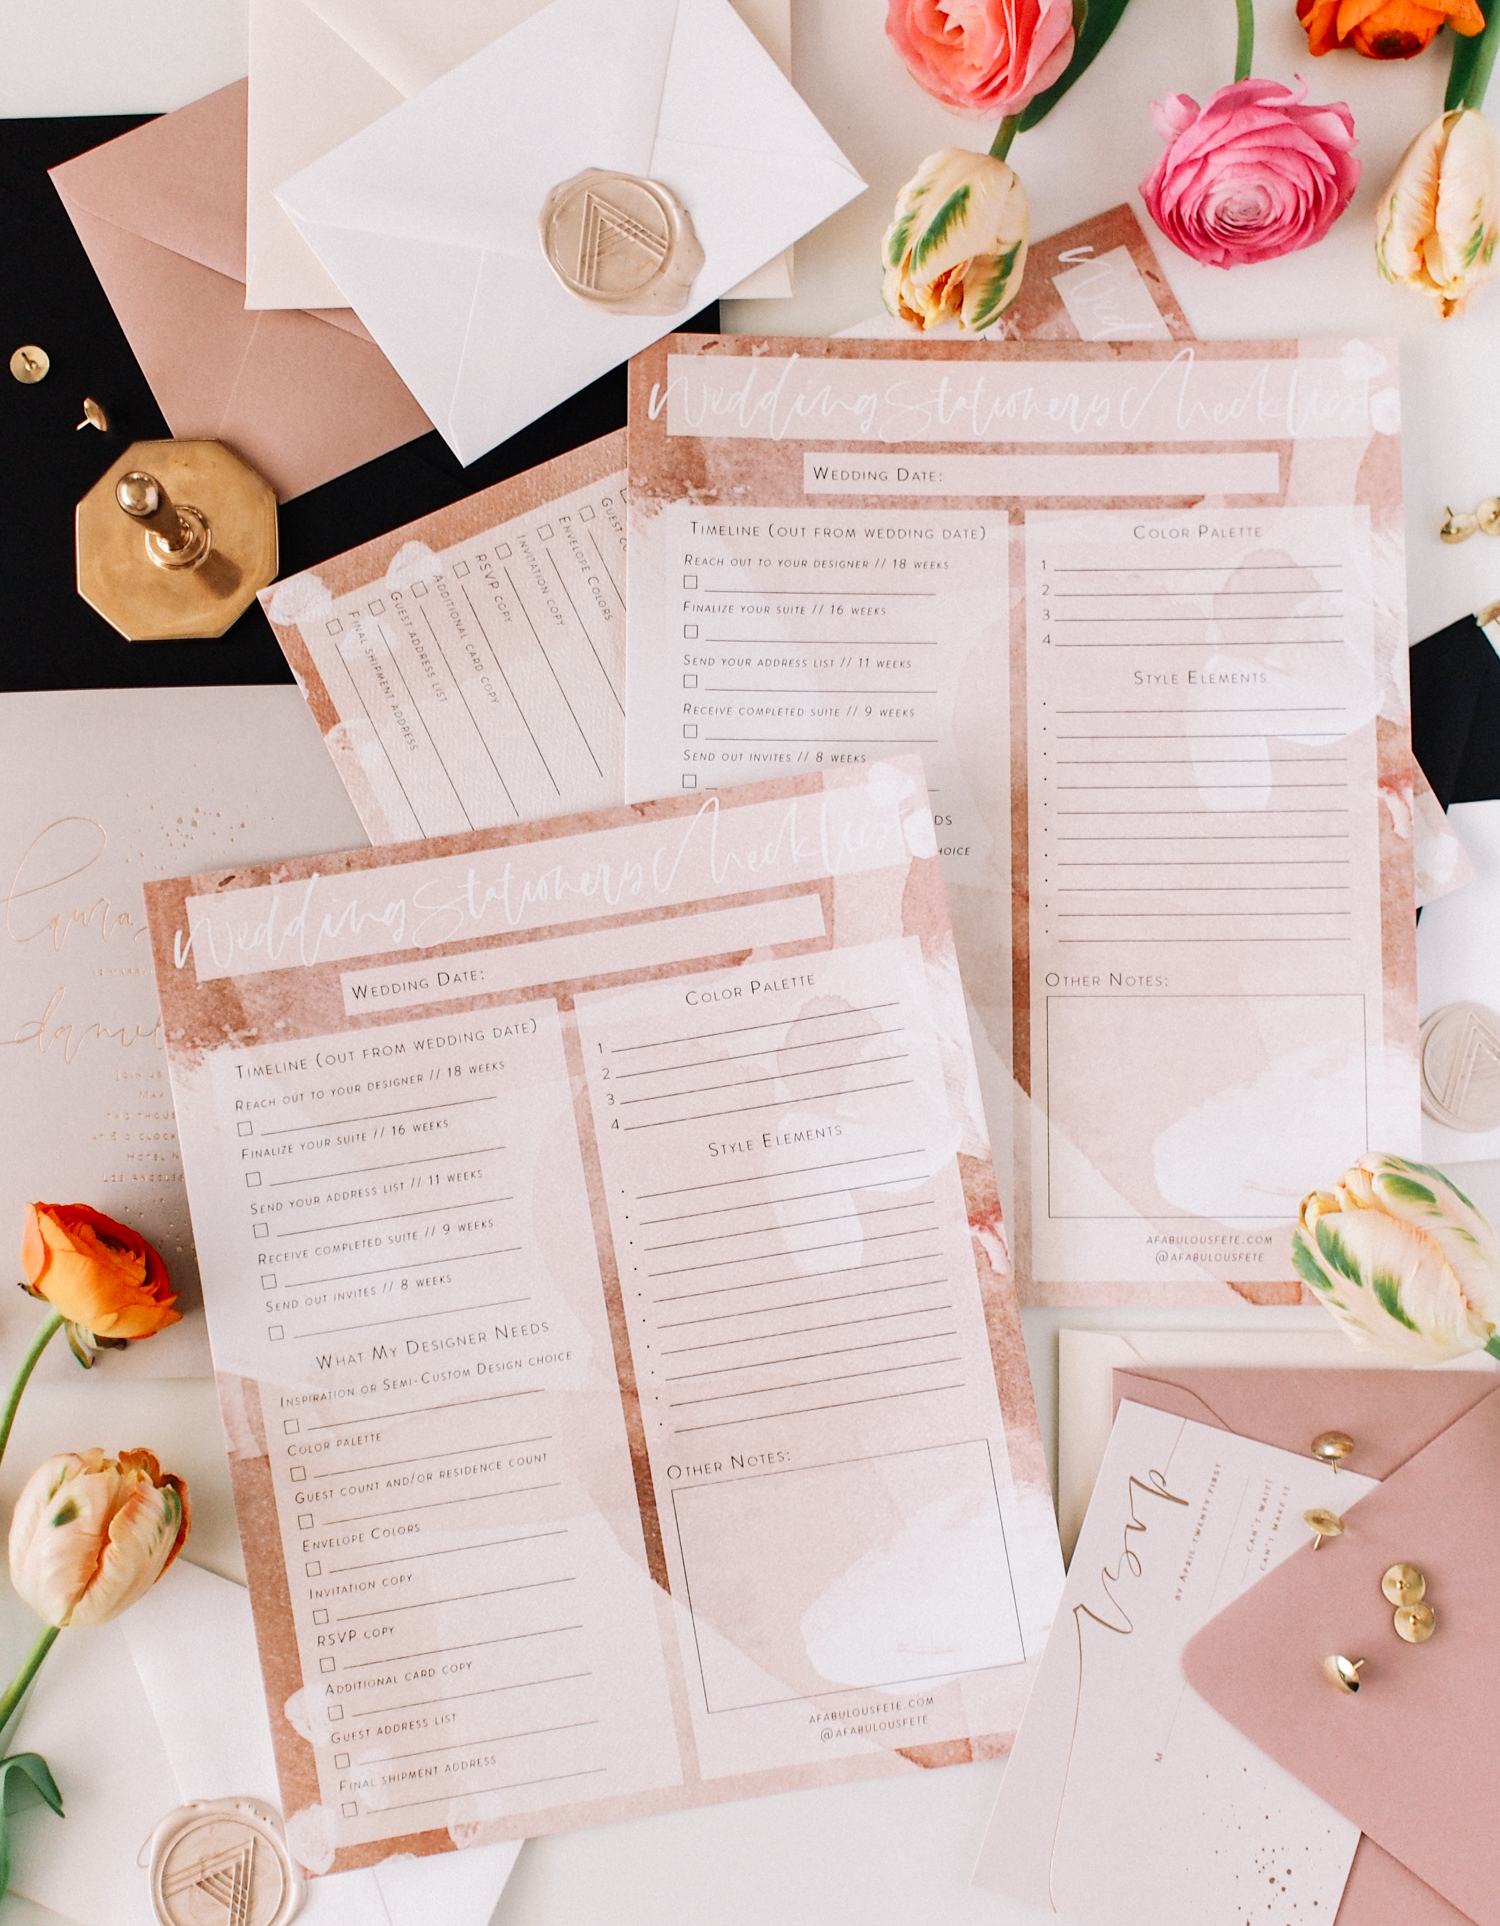 Download your free wedding stationery checklist | A Fabulous Fete